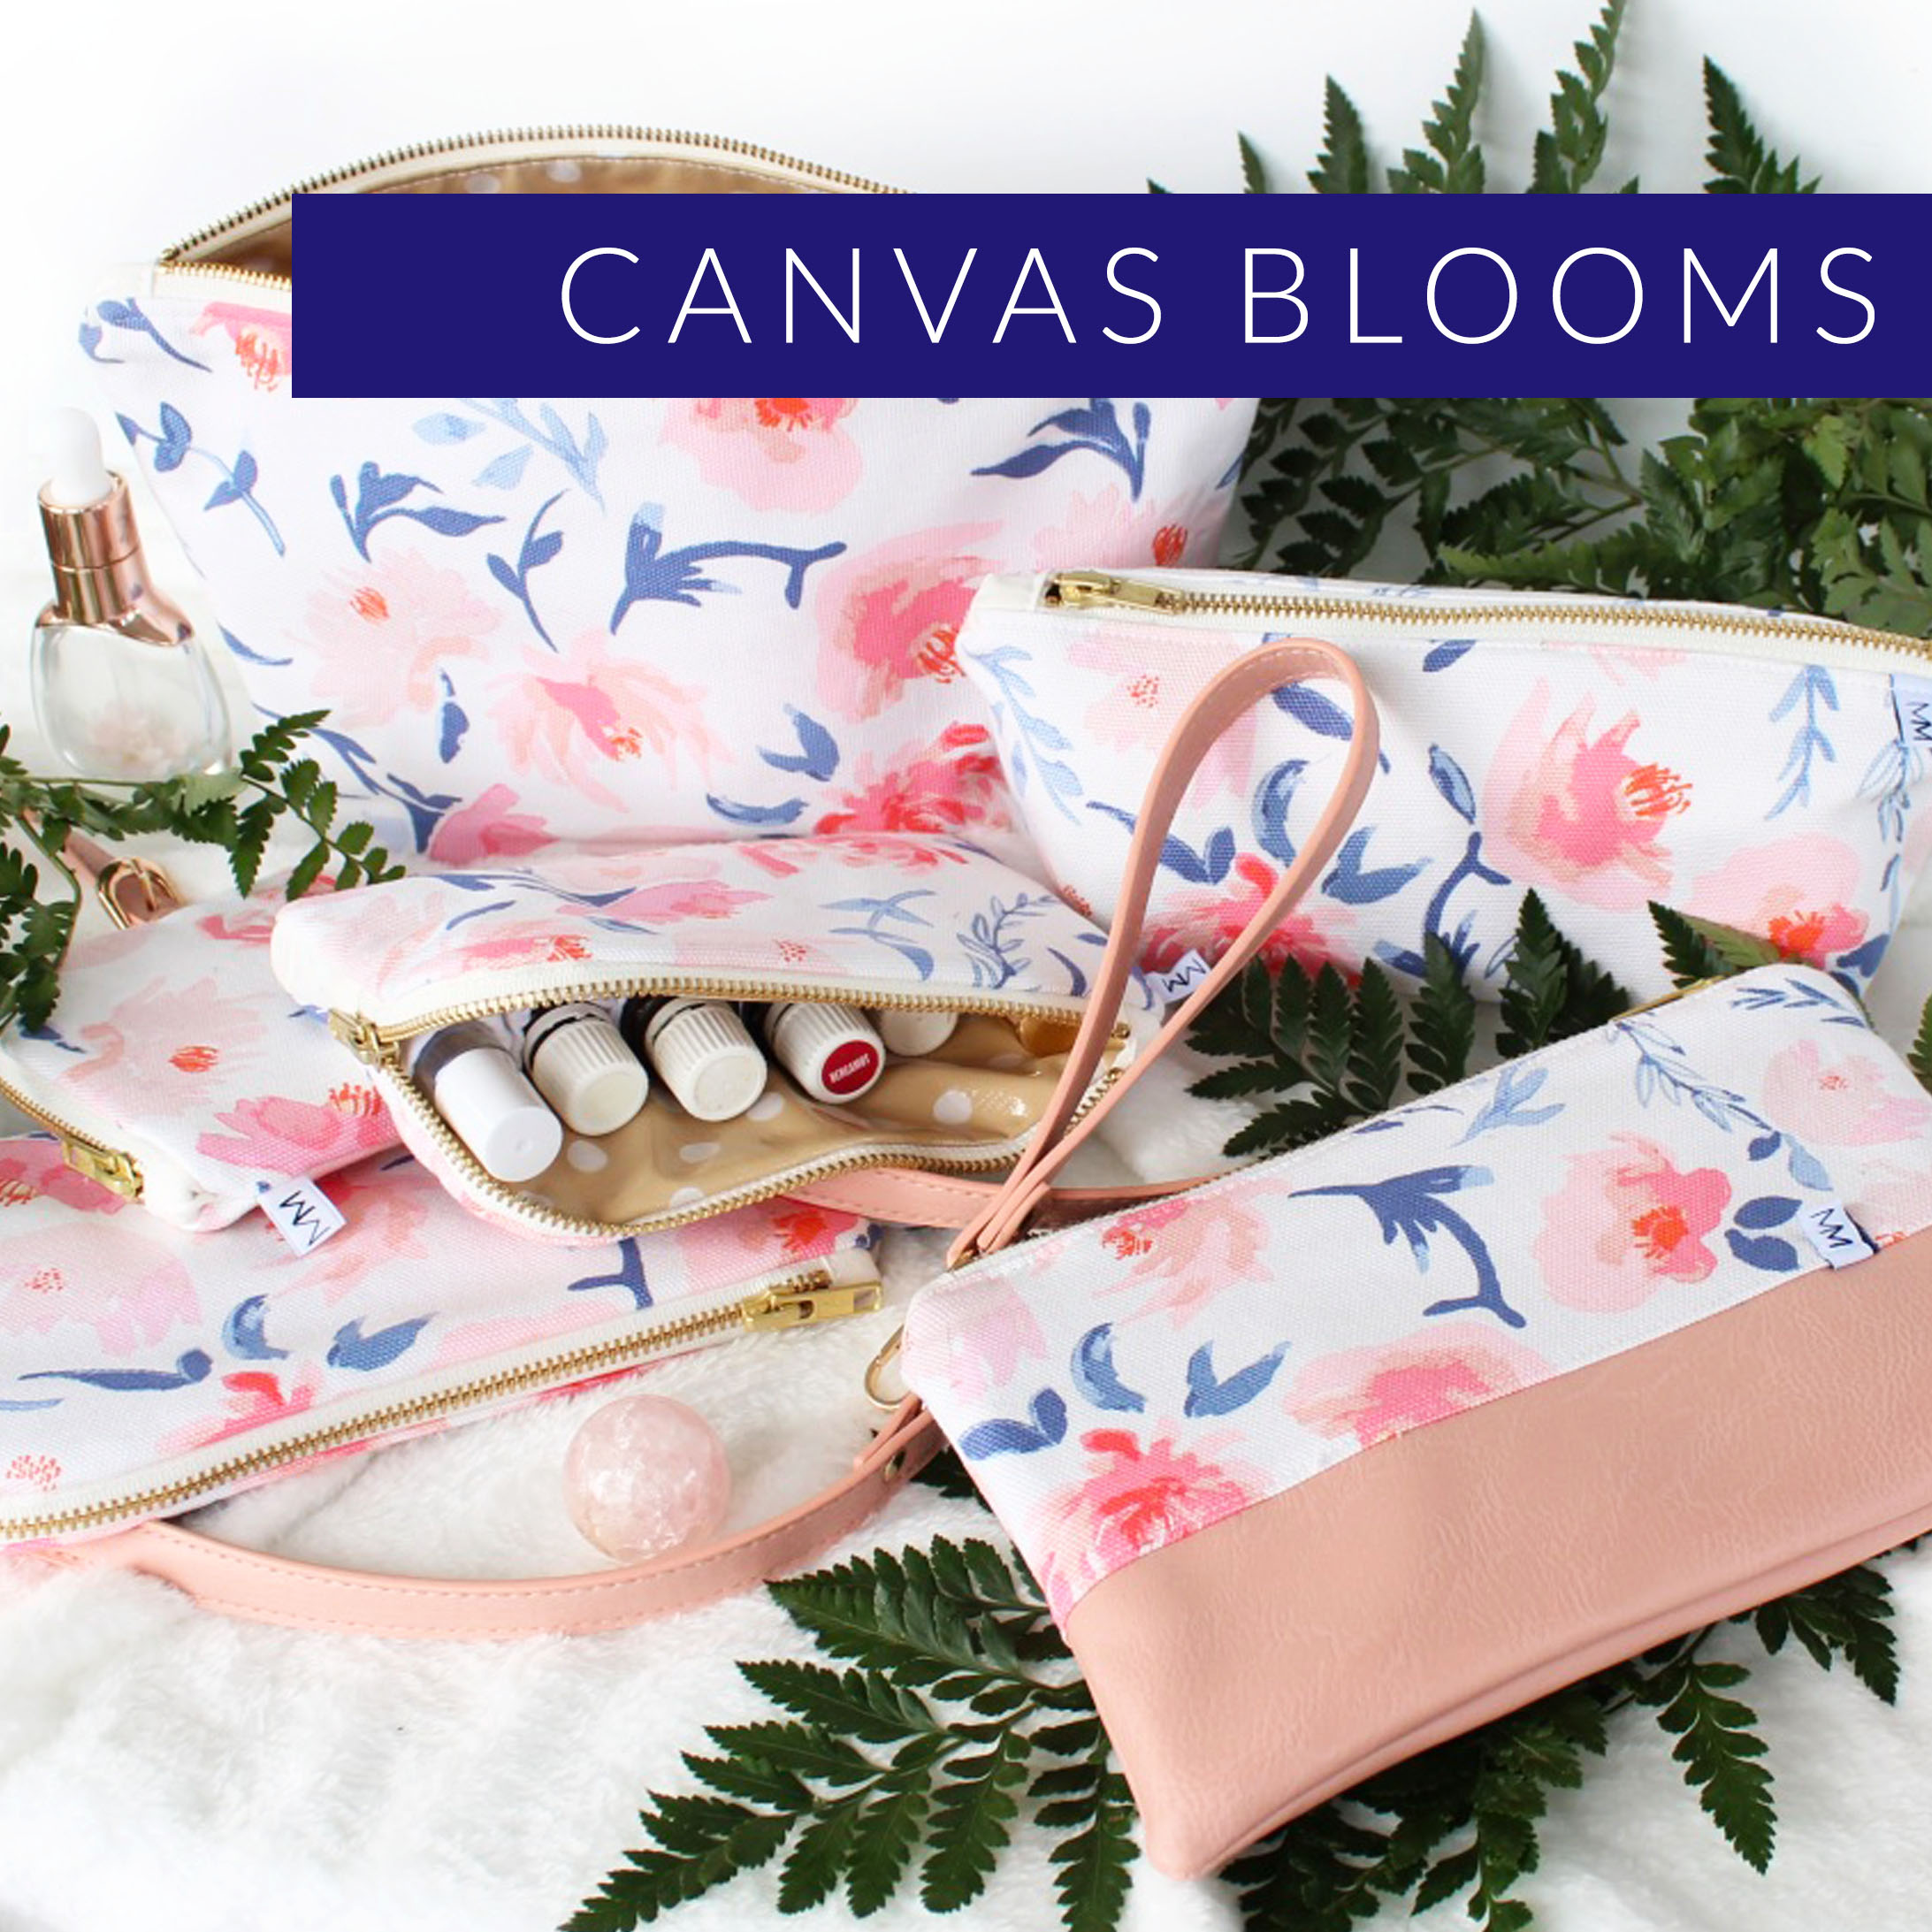 CANVAS BLOOMS COLLECTION GRAPHIC.jpg